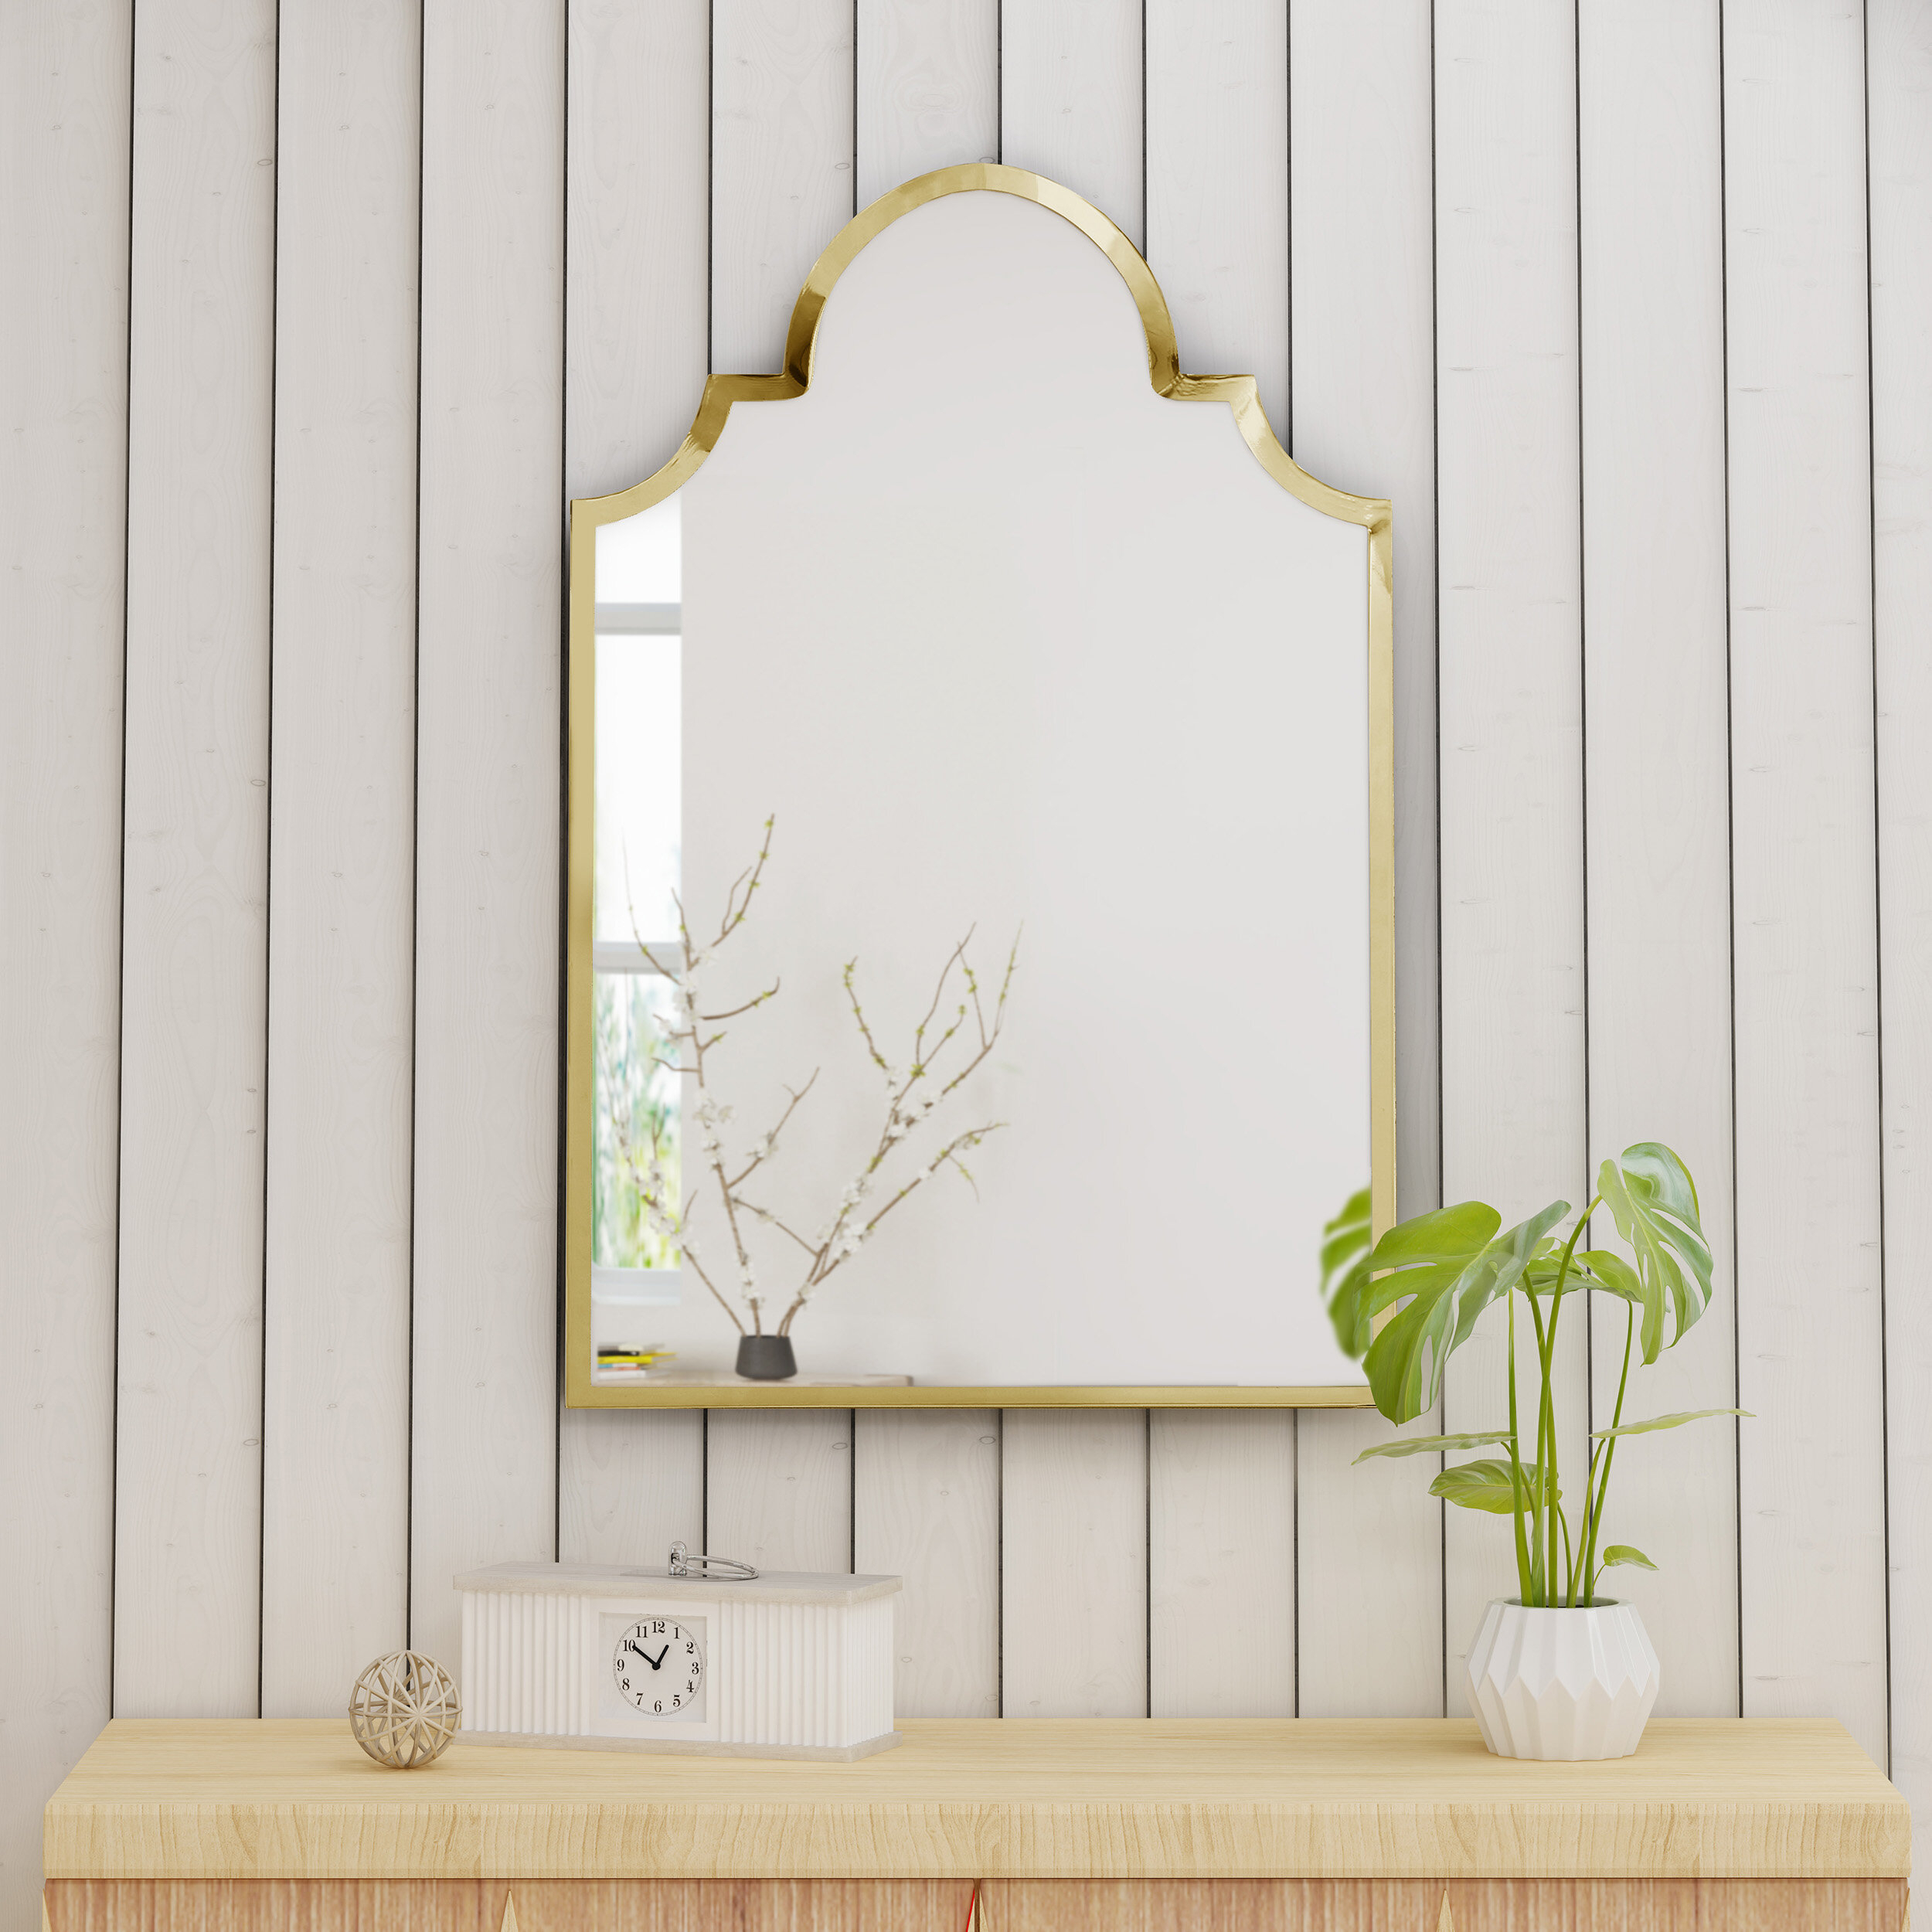 Cassel Modern & Contemporary Accent Mirror Within Guidinha Modern & Contemporary Accent Mirrors (View 19 of 20)